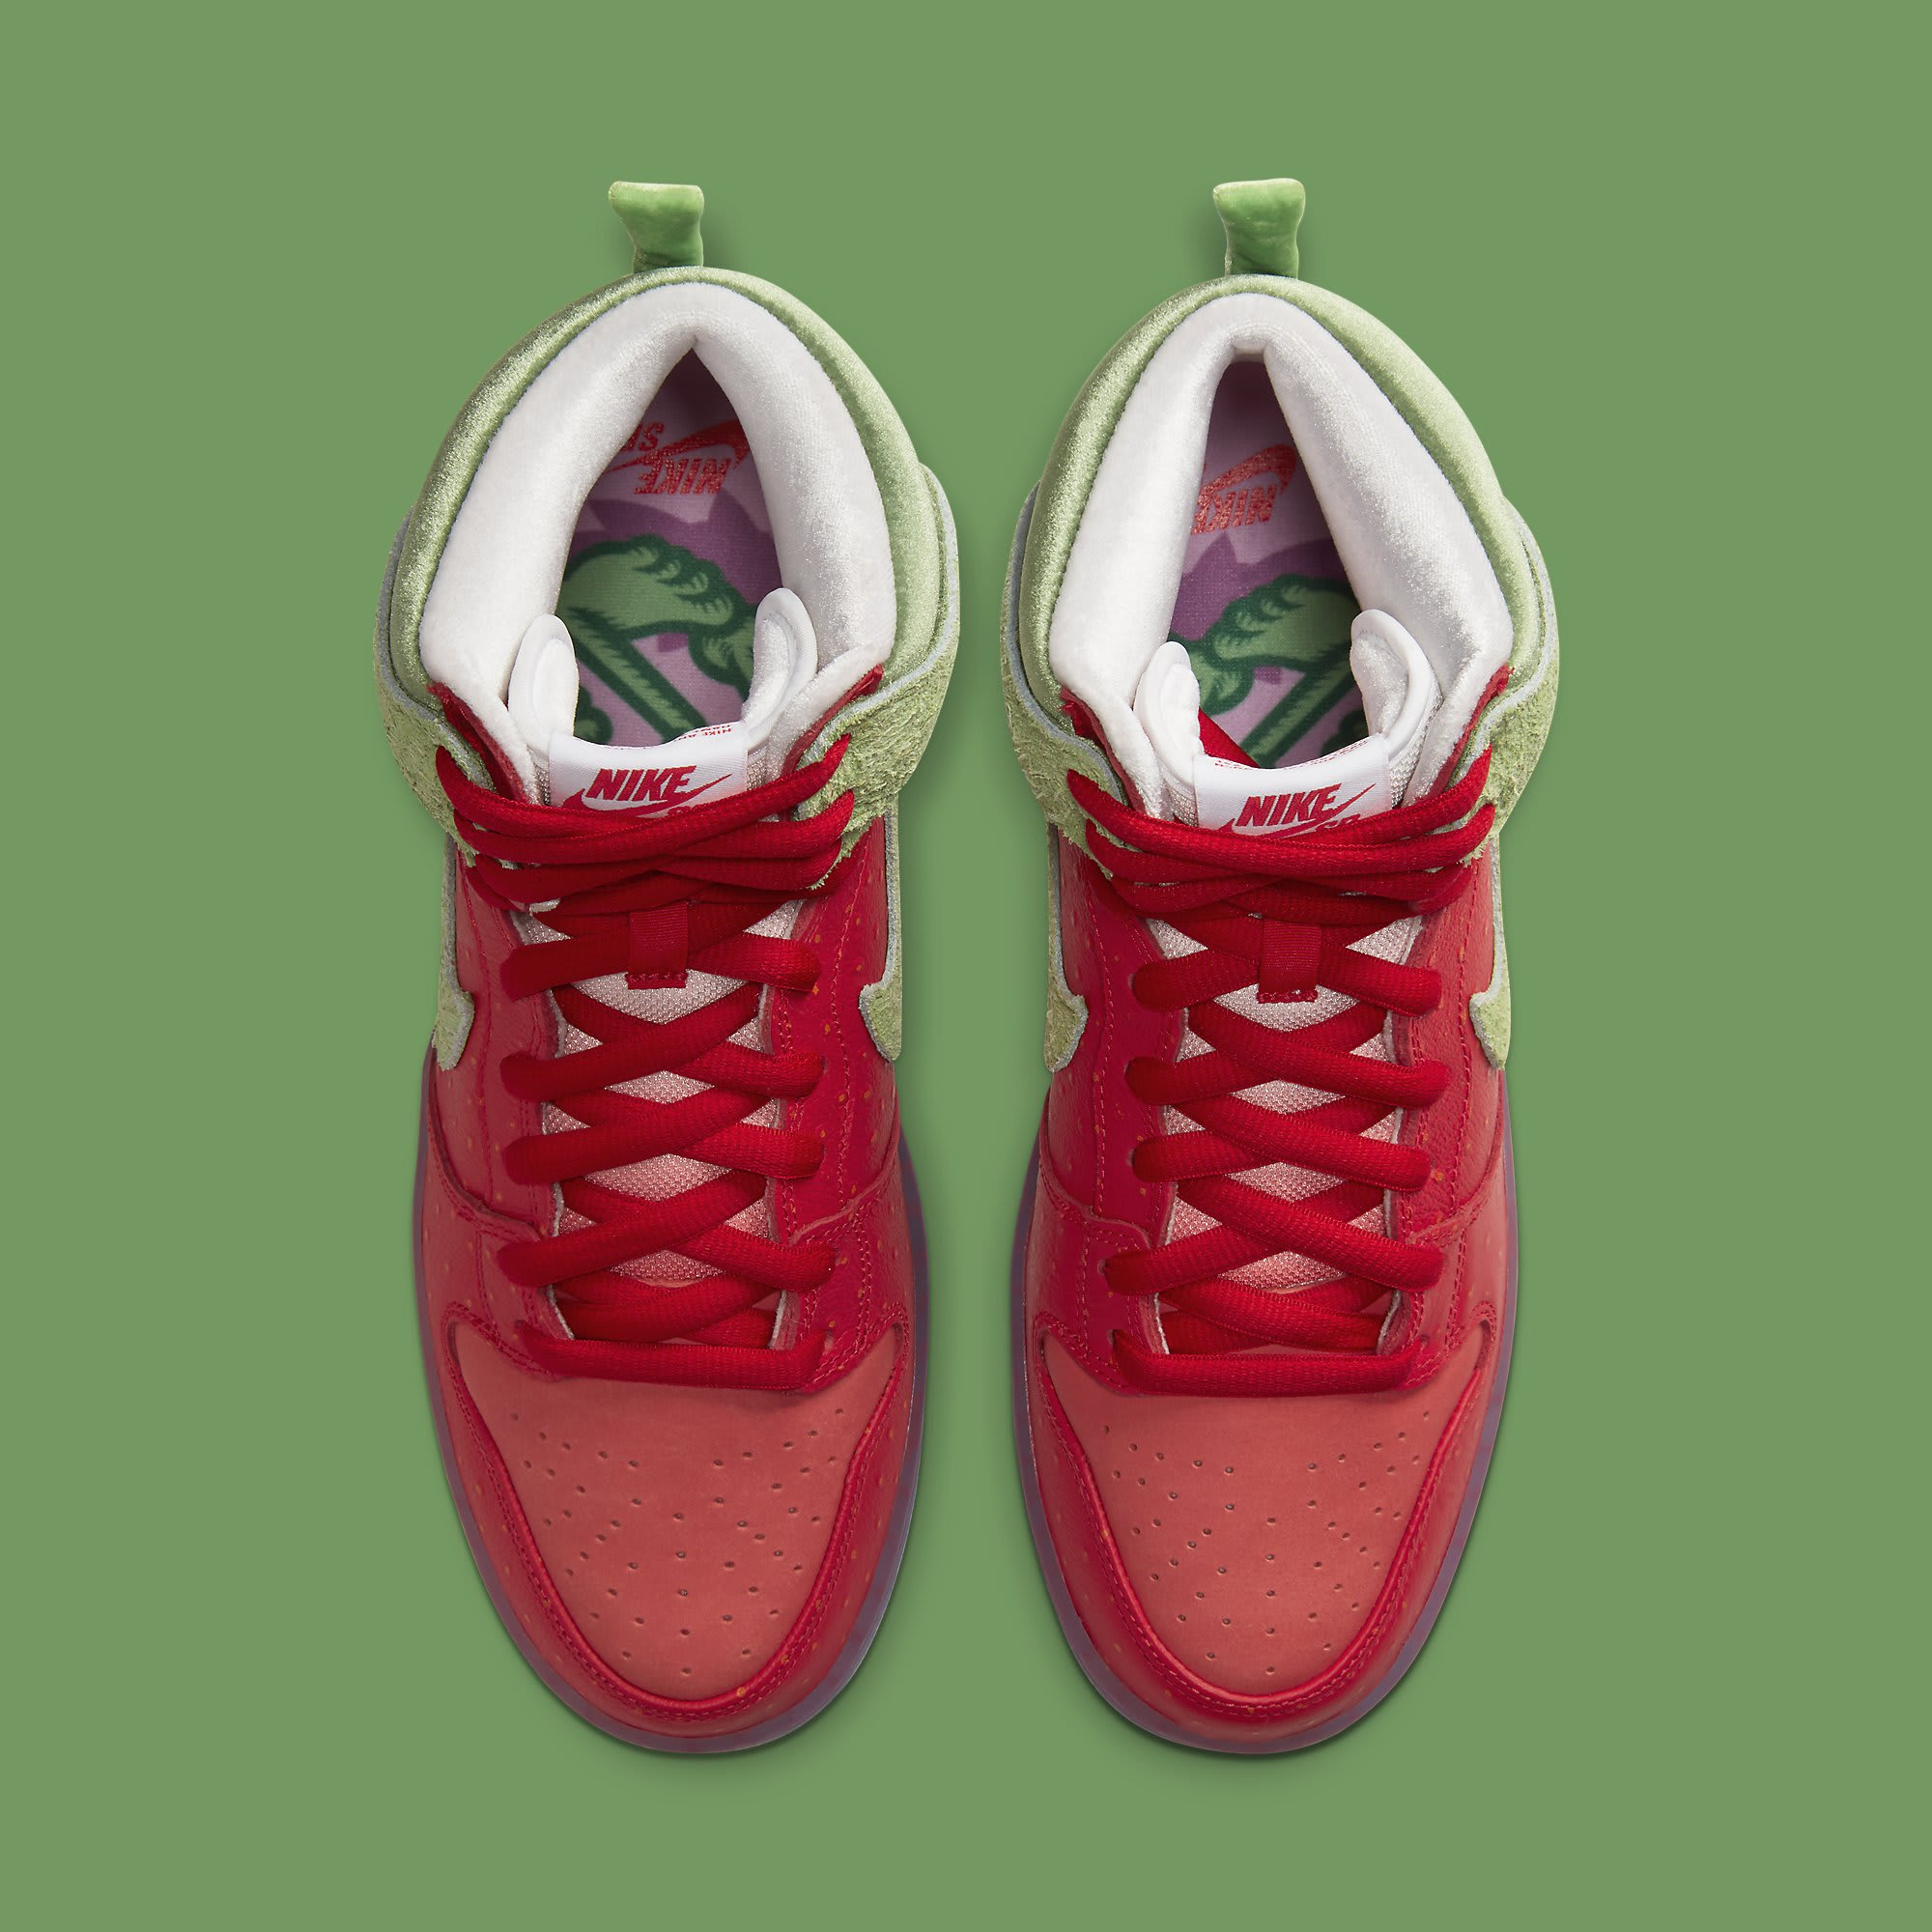 Strawberry Cough x Nike SB Dunk High SW7093-600 Release Date Top